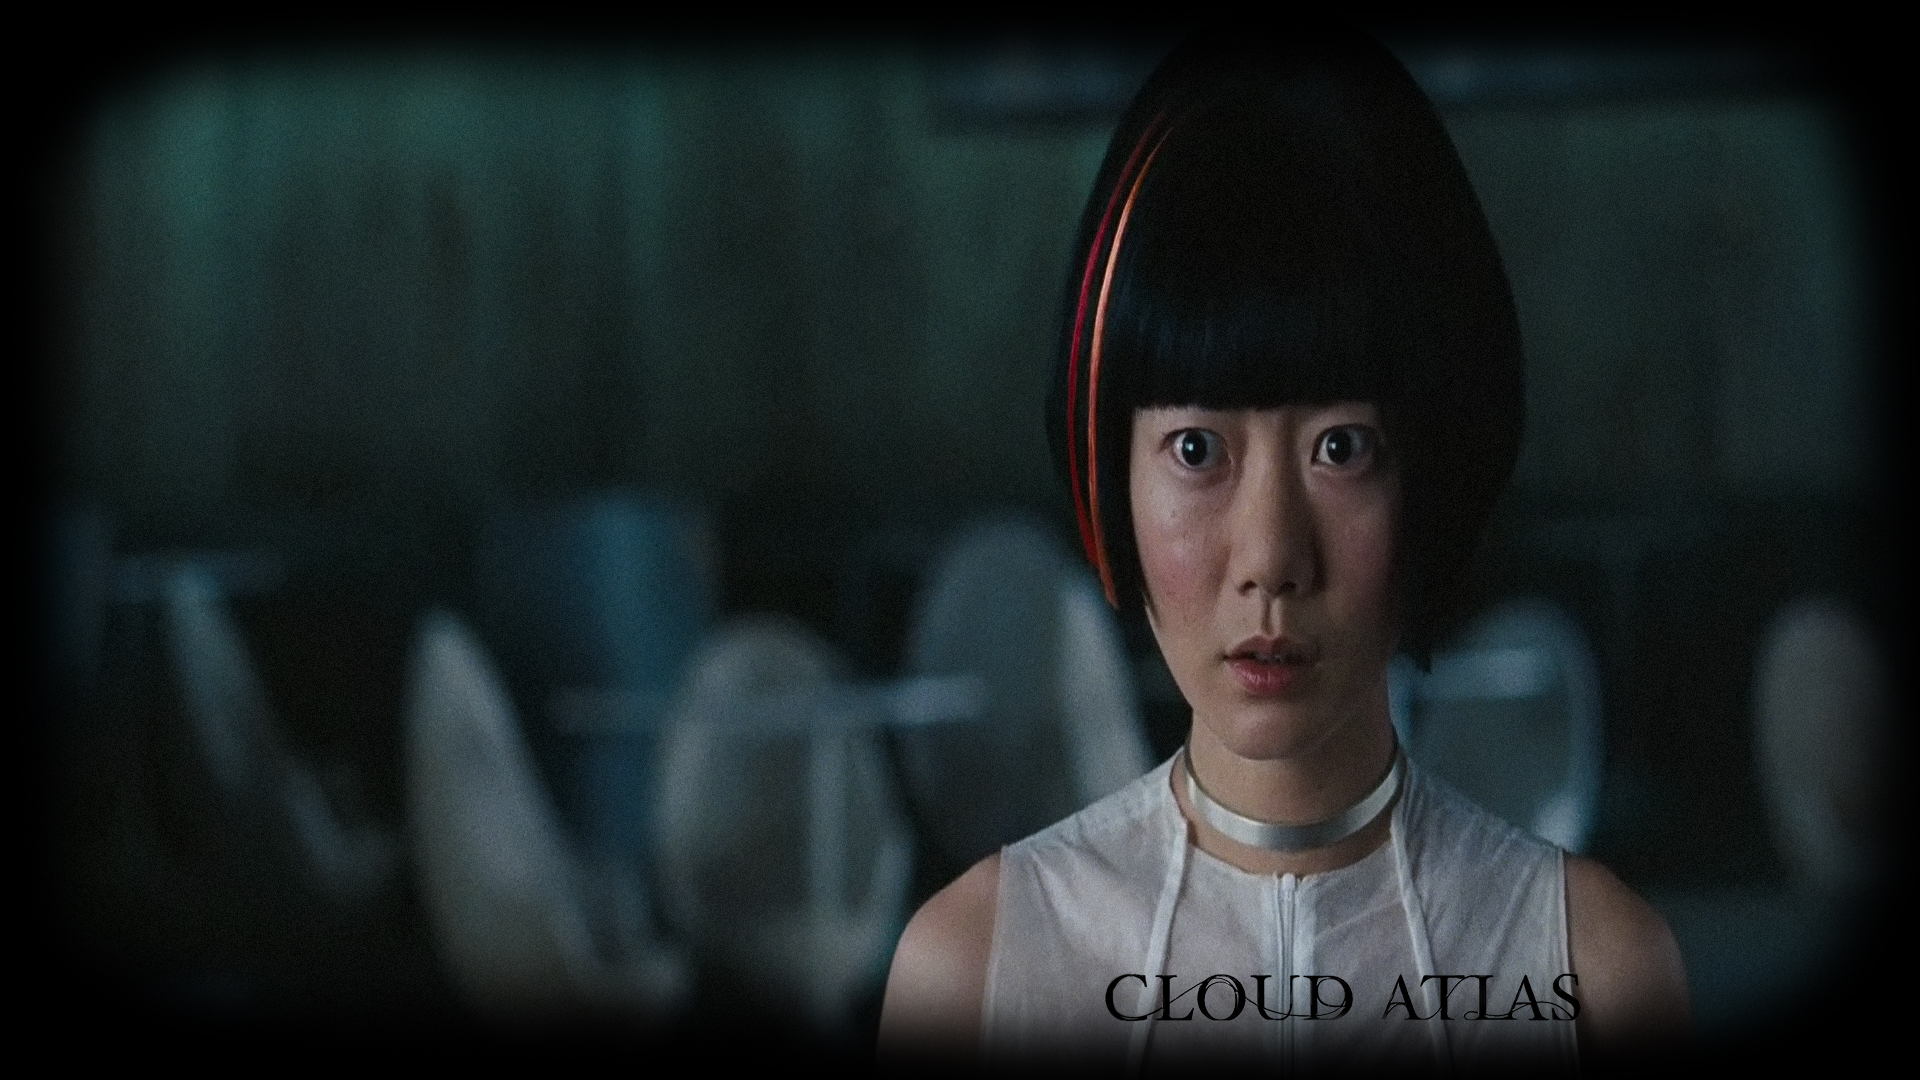 Cloud-Atlas-1920%C3%971080-wallpaper-wp3604137